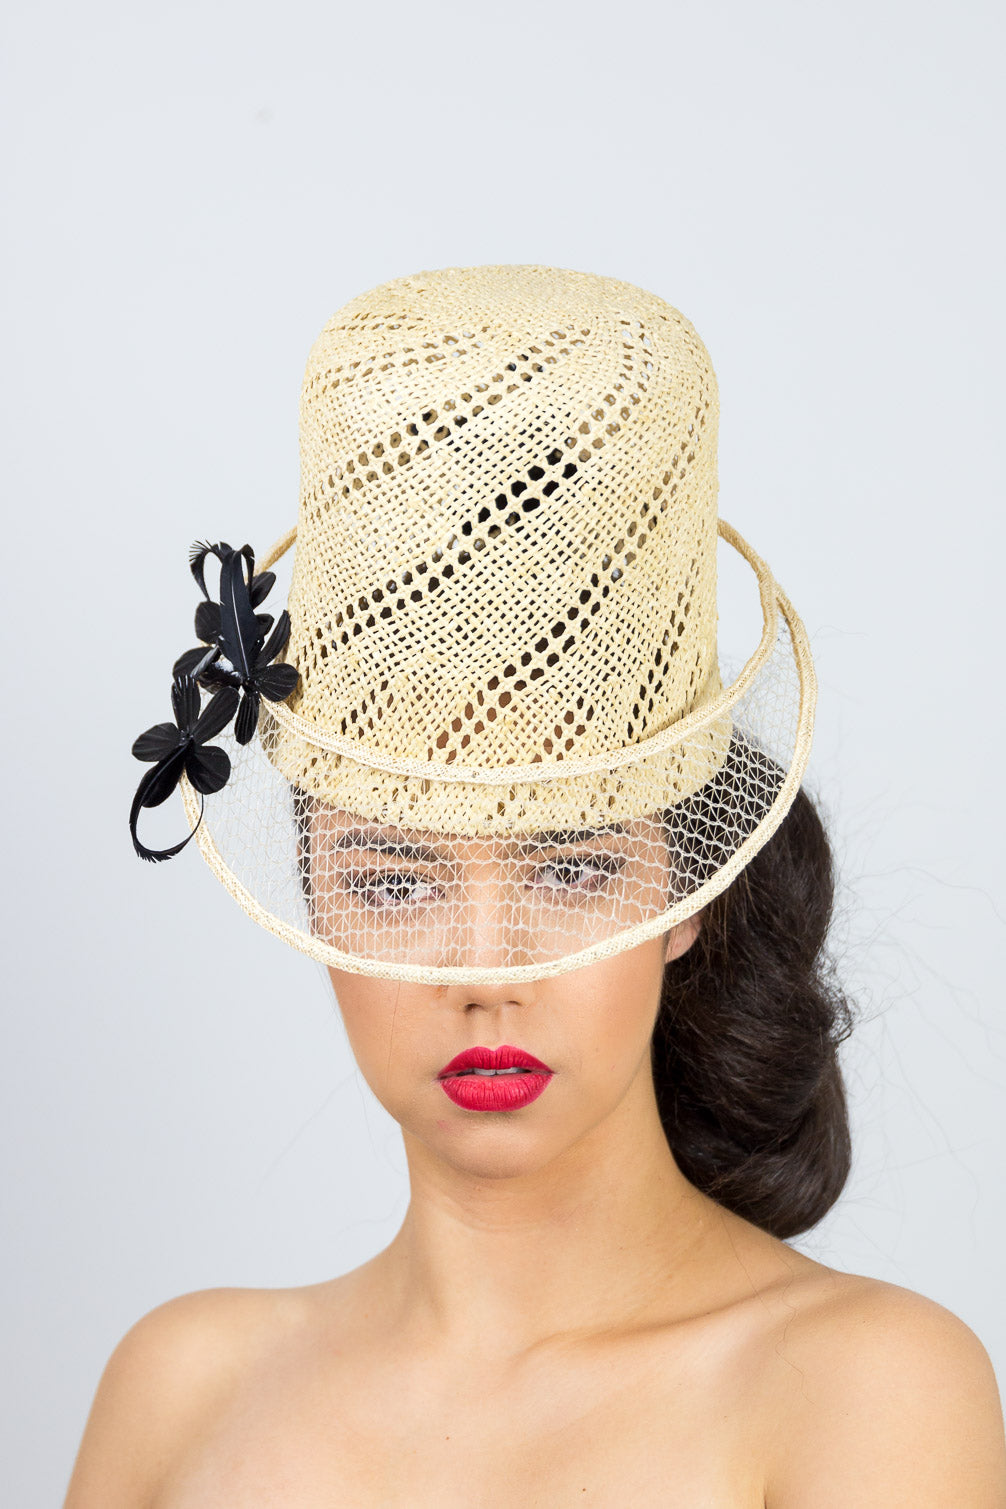 POPPY CAP-tall open weave natural straw cap with black floral trim